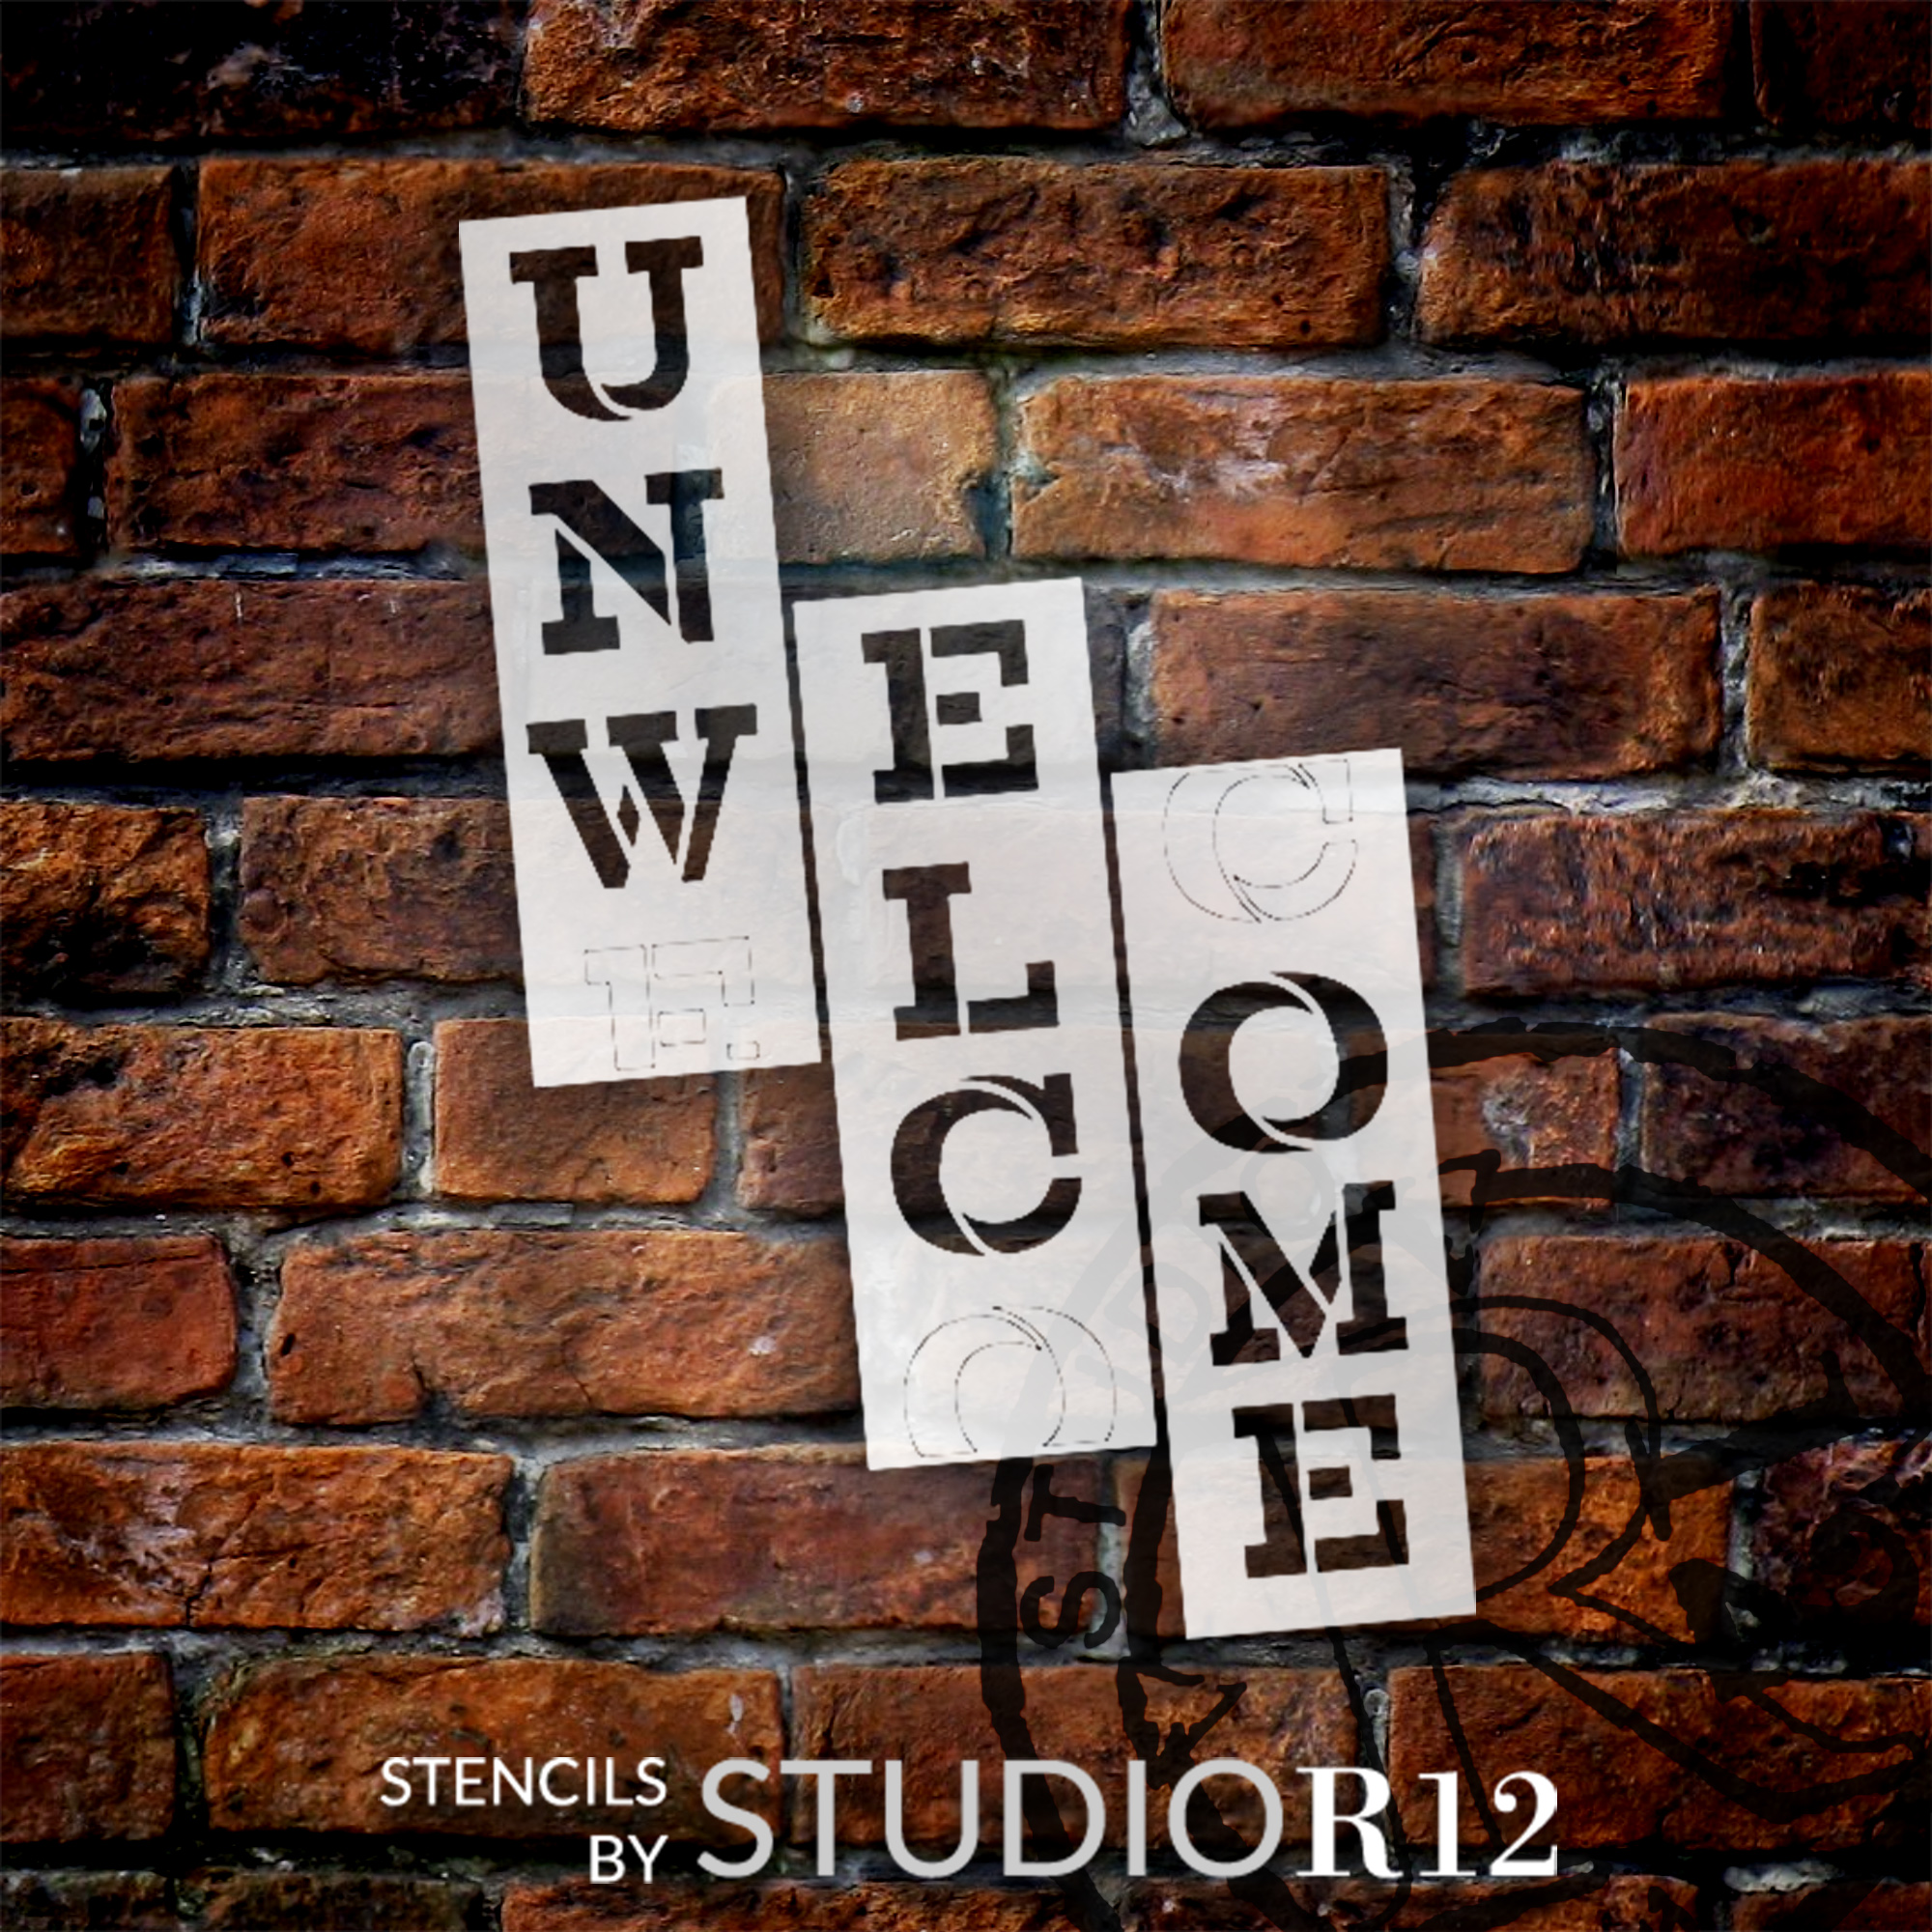 Unwelcome Tall Porch Stencil by StudioR12   3 Piece   DIY Large Vertical Funny Outdoor Home Decor for Front Door or Entryway   Craft & Paint Wood Leaner Signs   Reusable Mylar Template   Size 6ft